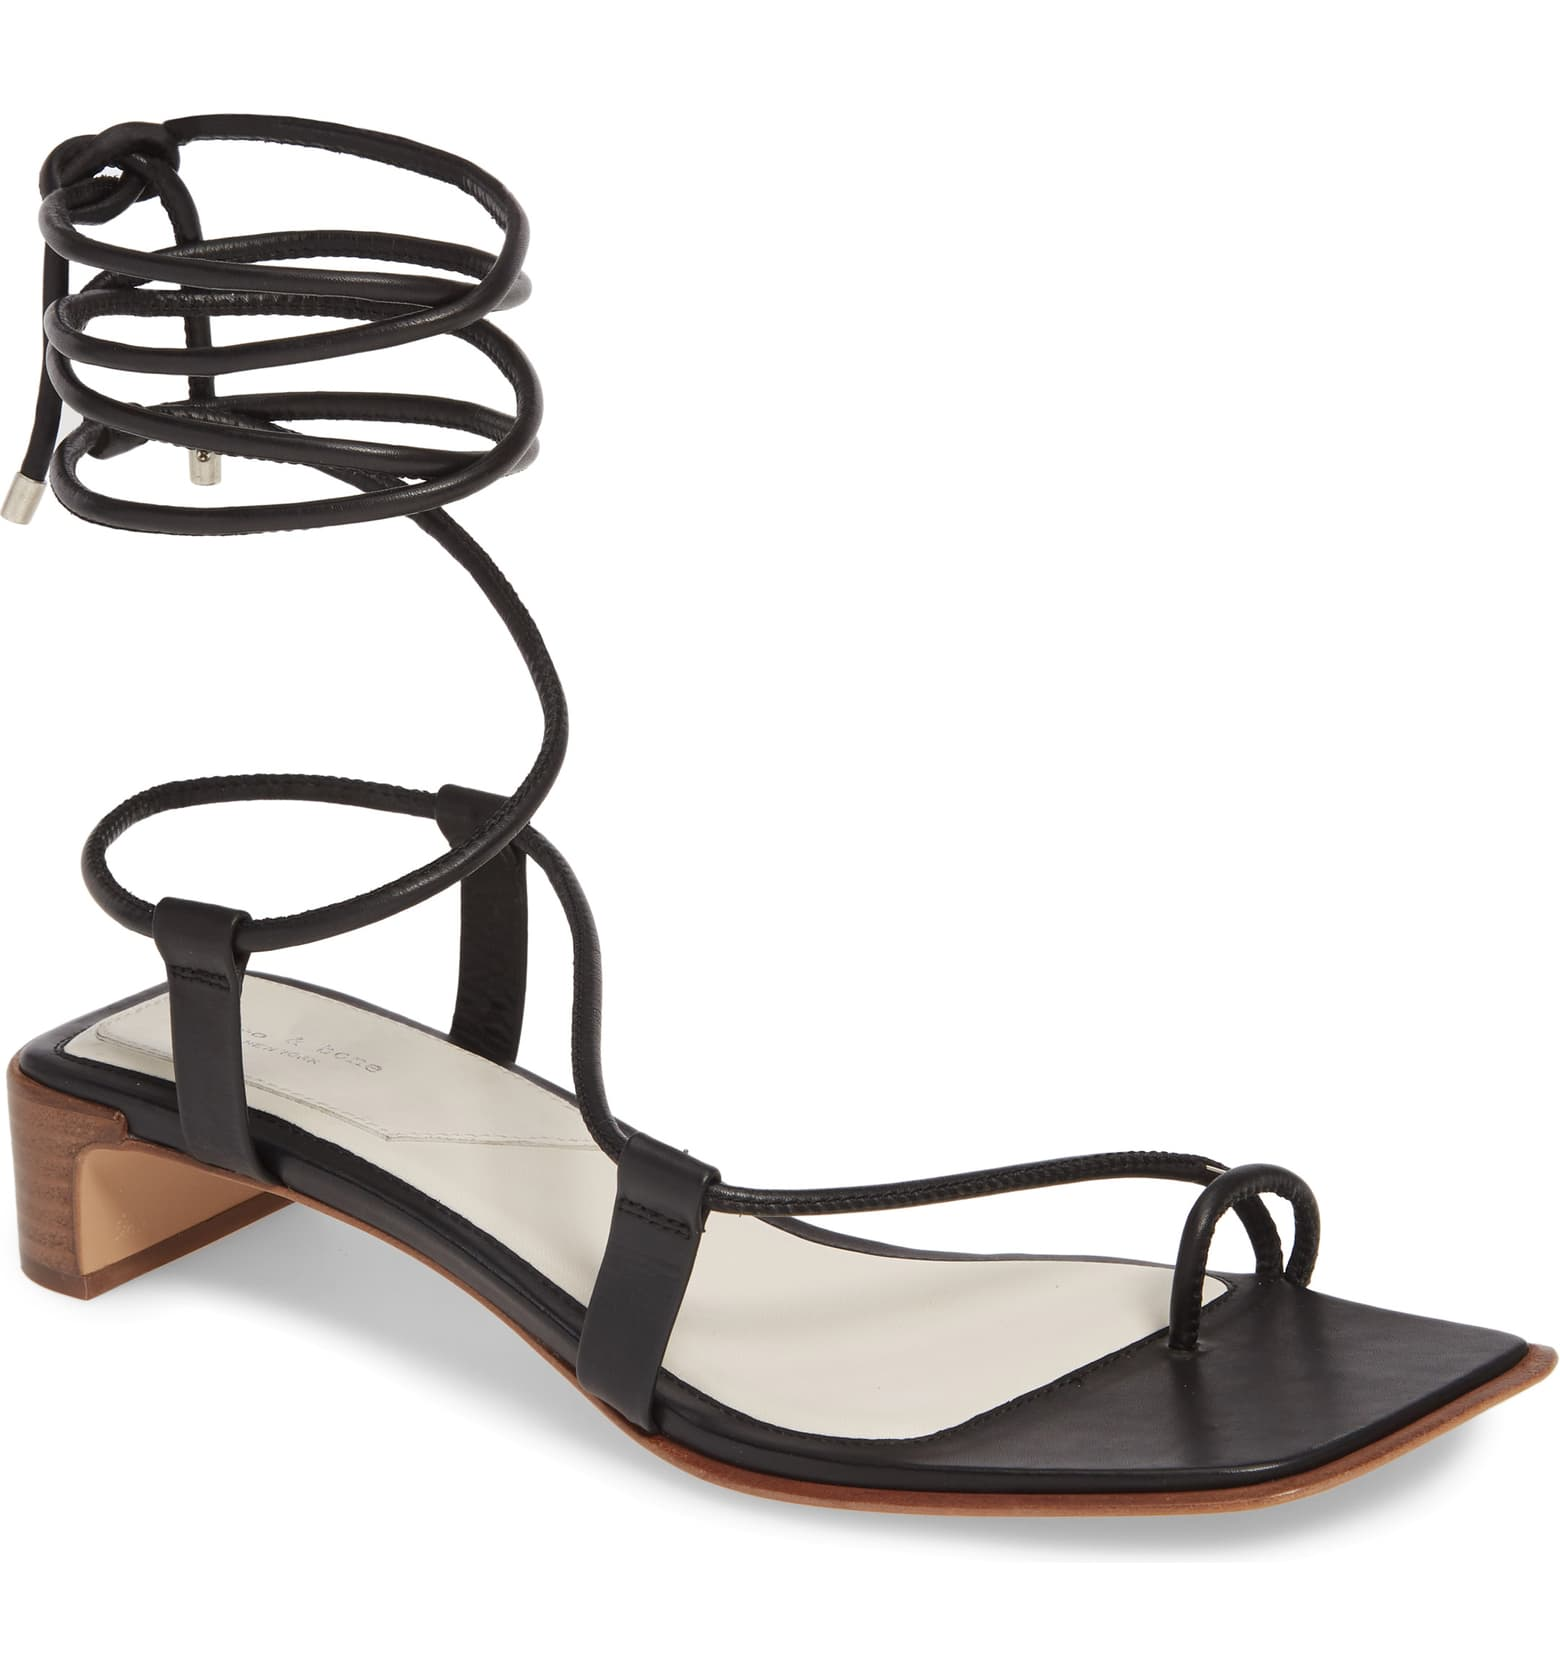 Cindy Lace-Up Sandal by Rag & Bone, available on nordstrom.com for $395 Kendall Jenner Shoes Exact Product